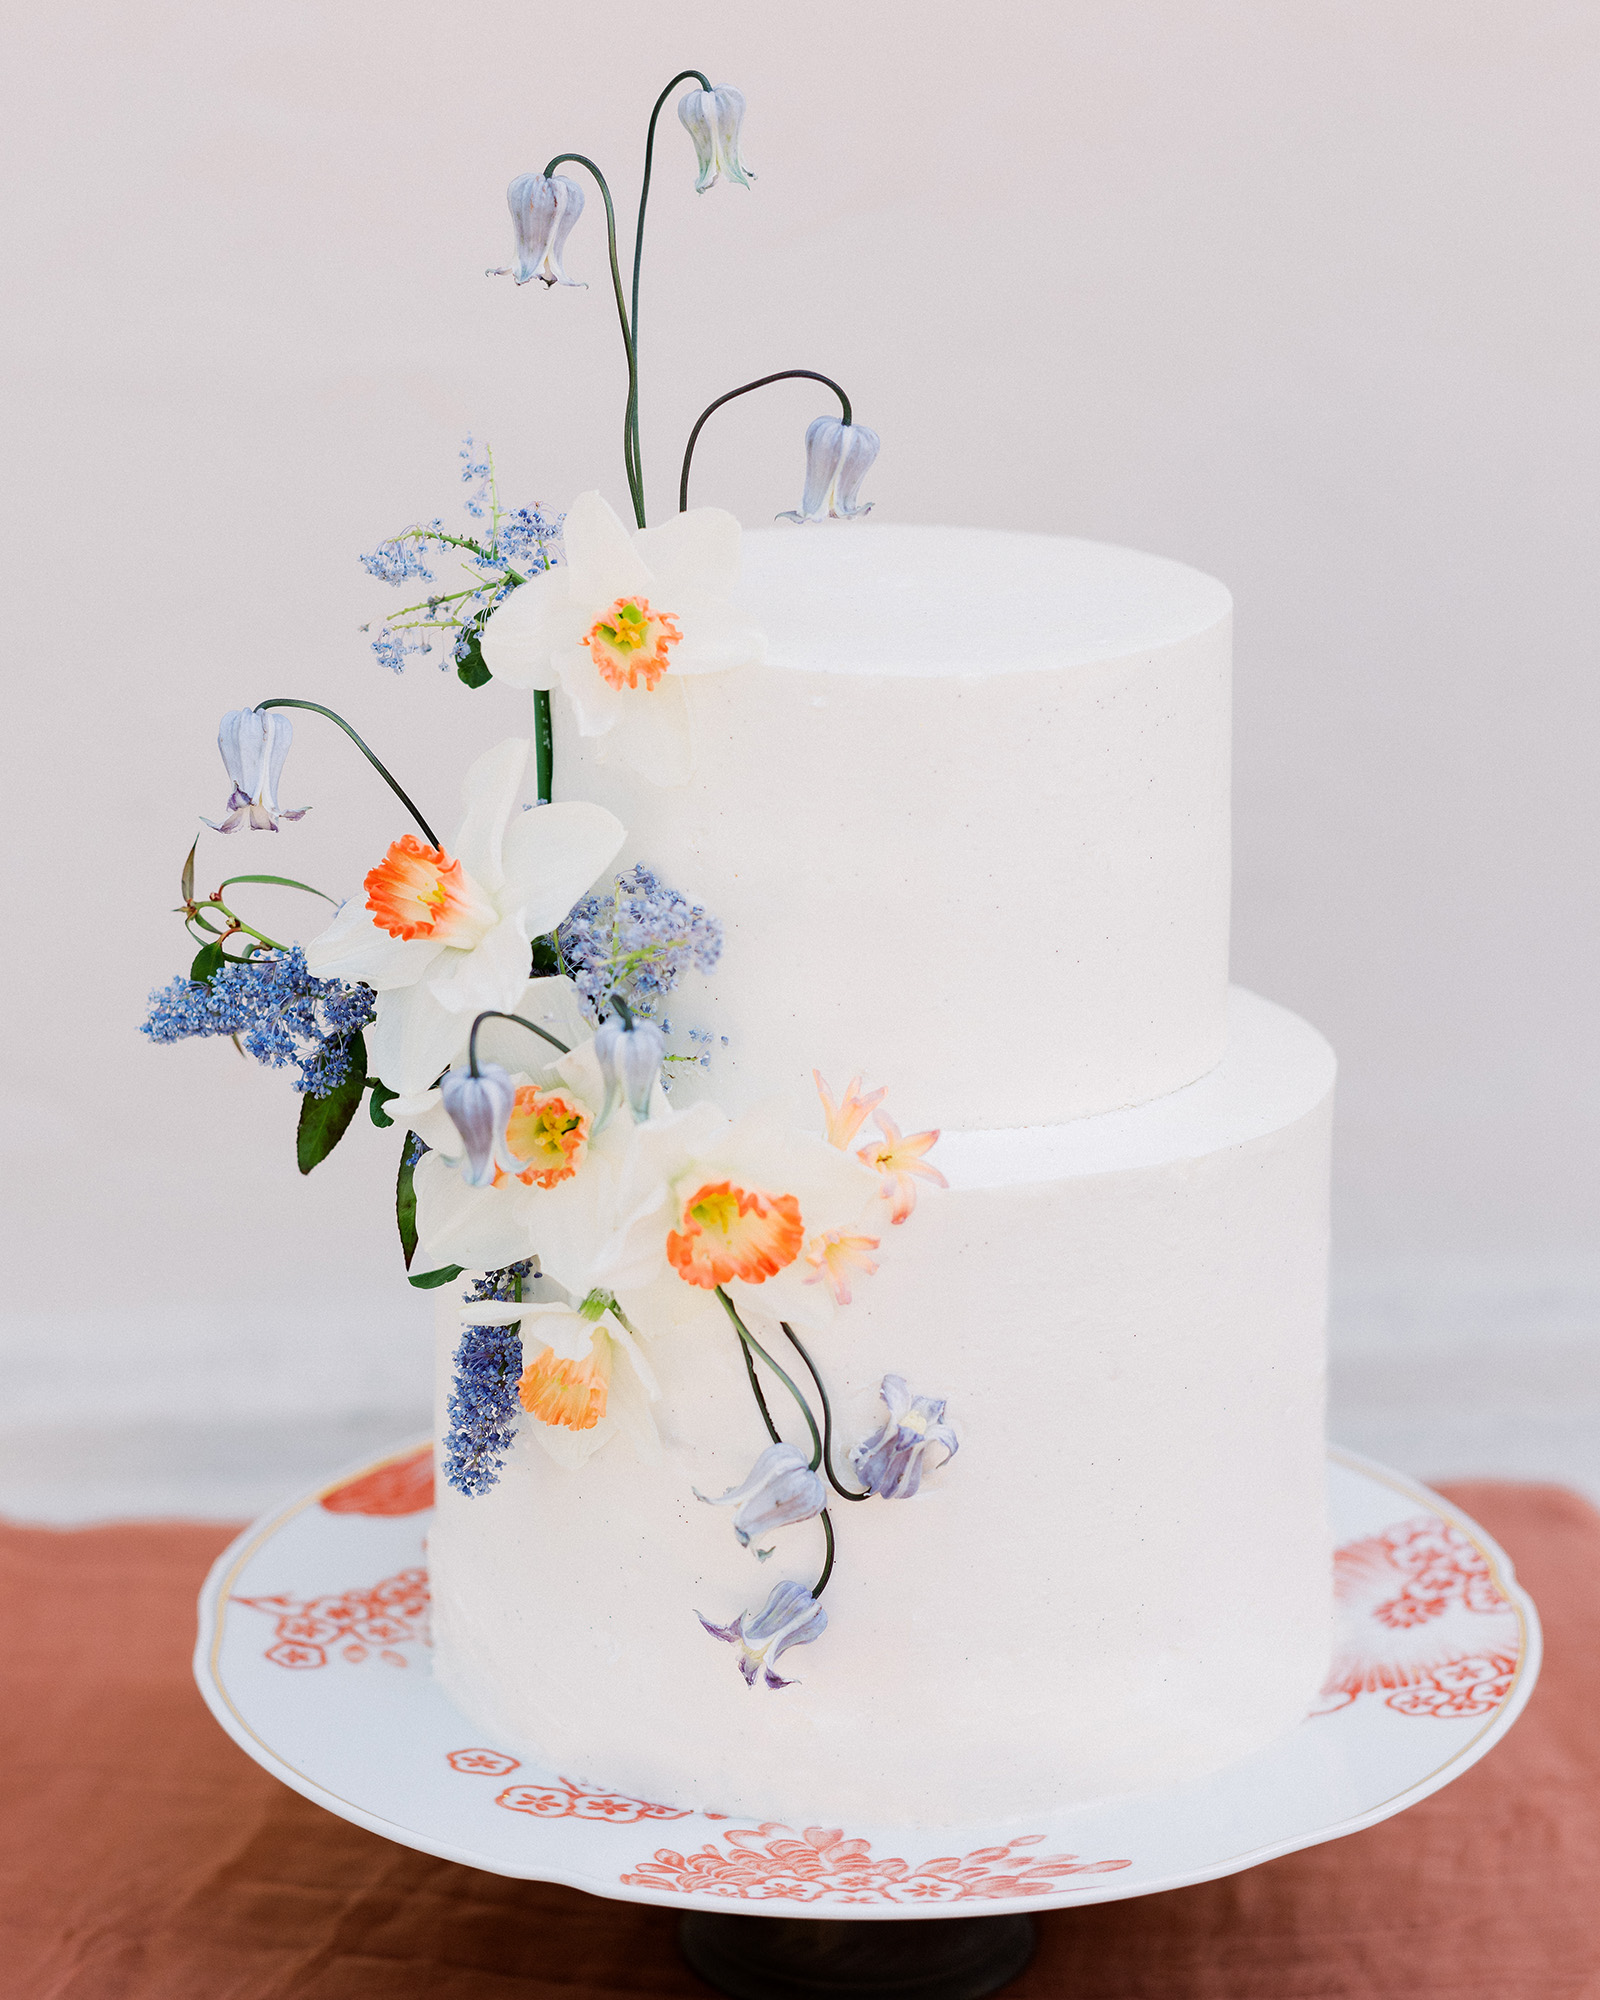 If you choose to serve a cake during your rehearsal dinner, keep it small (leave the over-the-top confection for the main event!). A fun way to make your tiny dessert feel special? Sugar flowers, like the ones on this Sheila Mae cake. Bonus points if they match the fresh florals seen throughout the party.